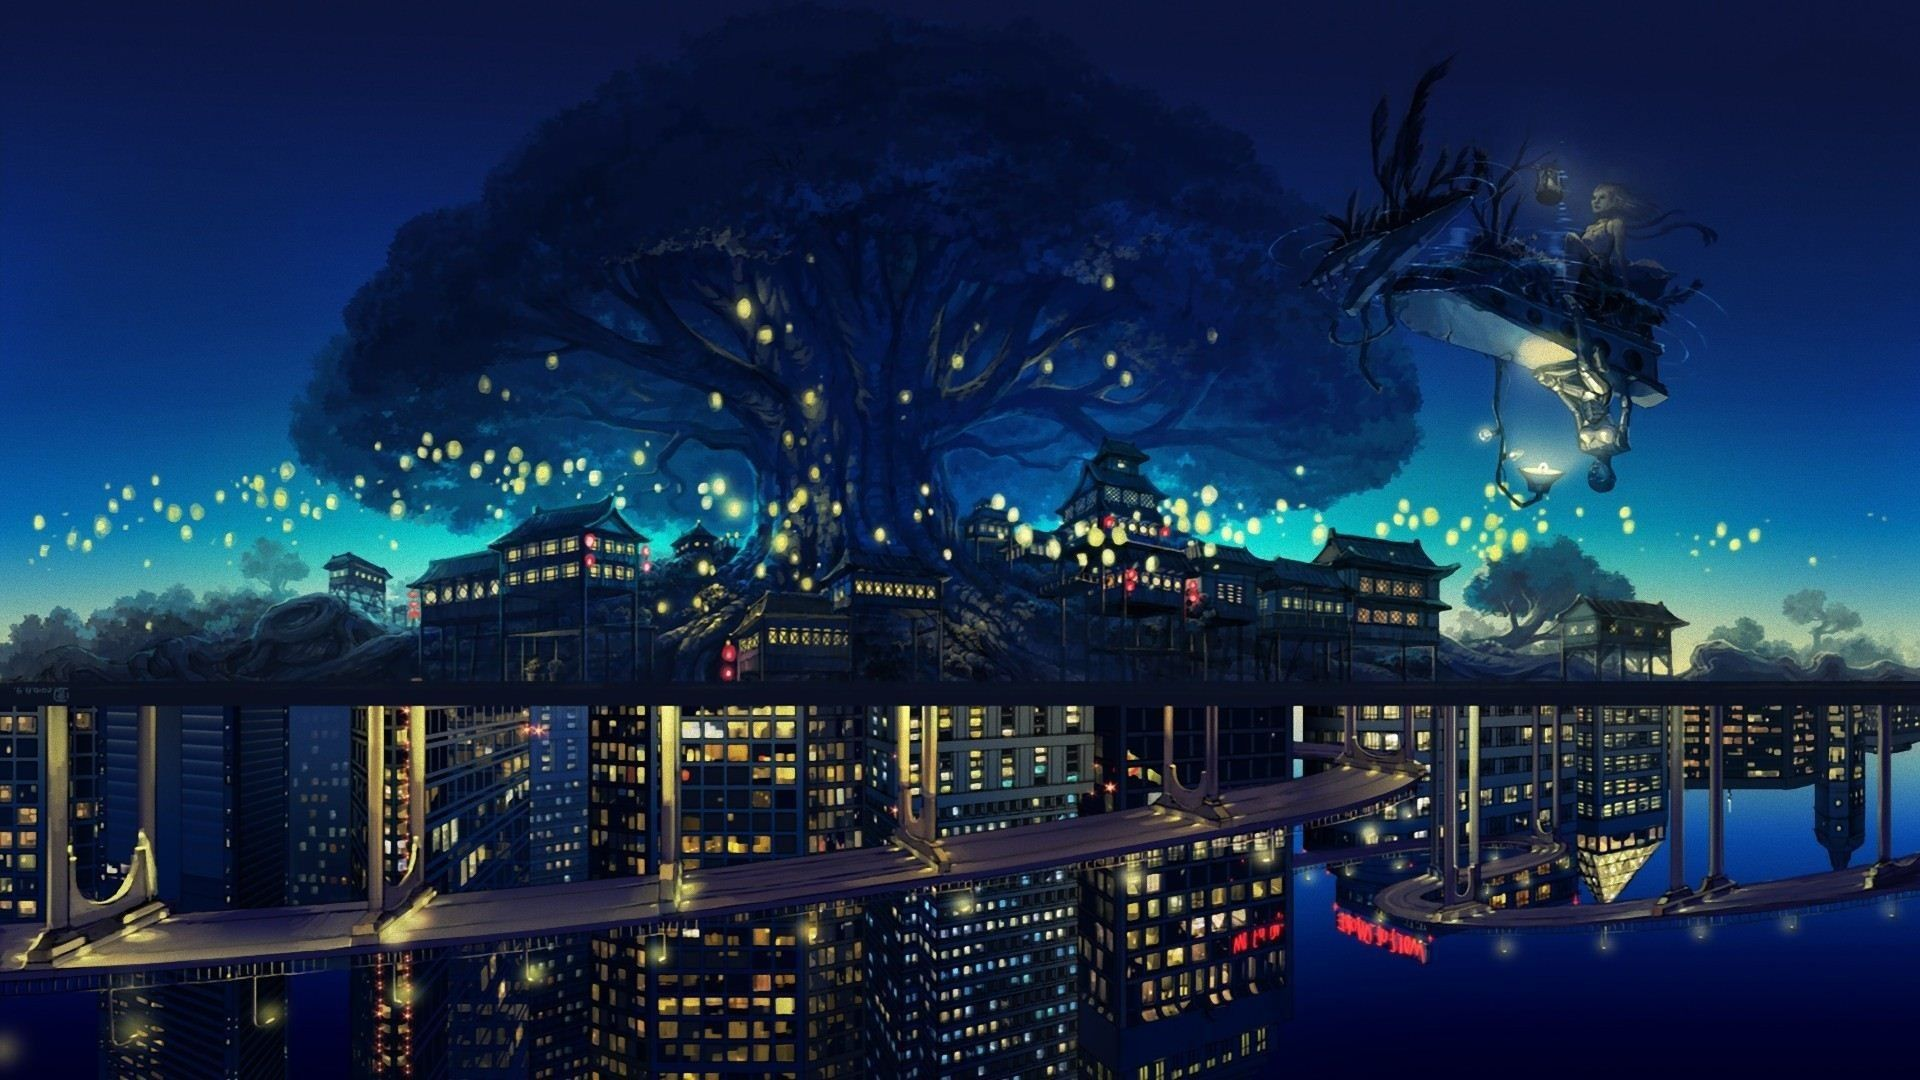 Aesthetic Anime City Wallpapers Top Free Aesthetic Anime City